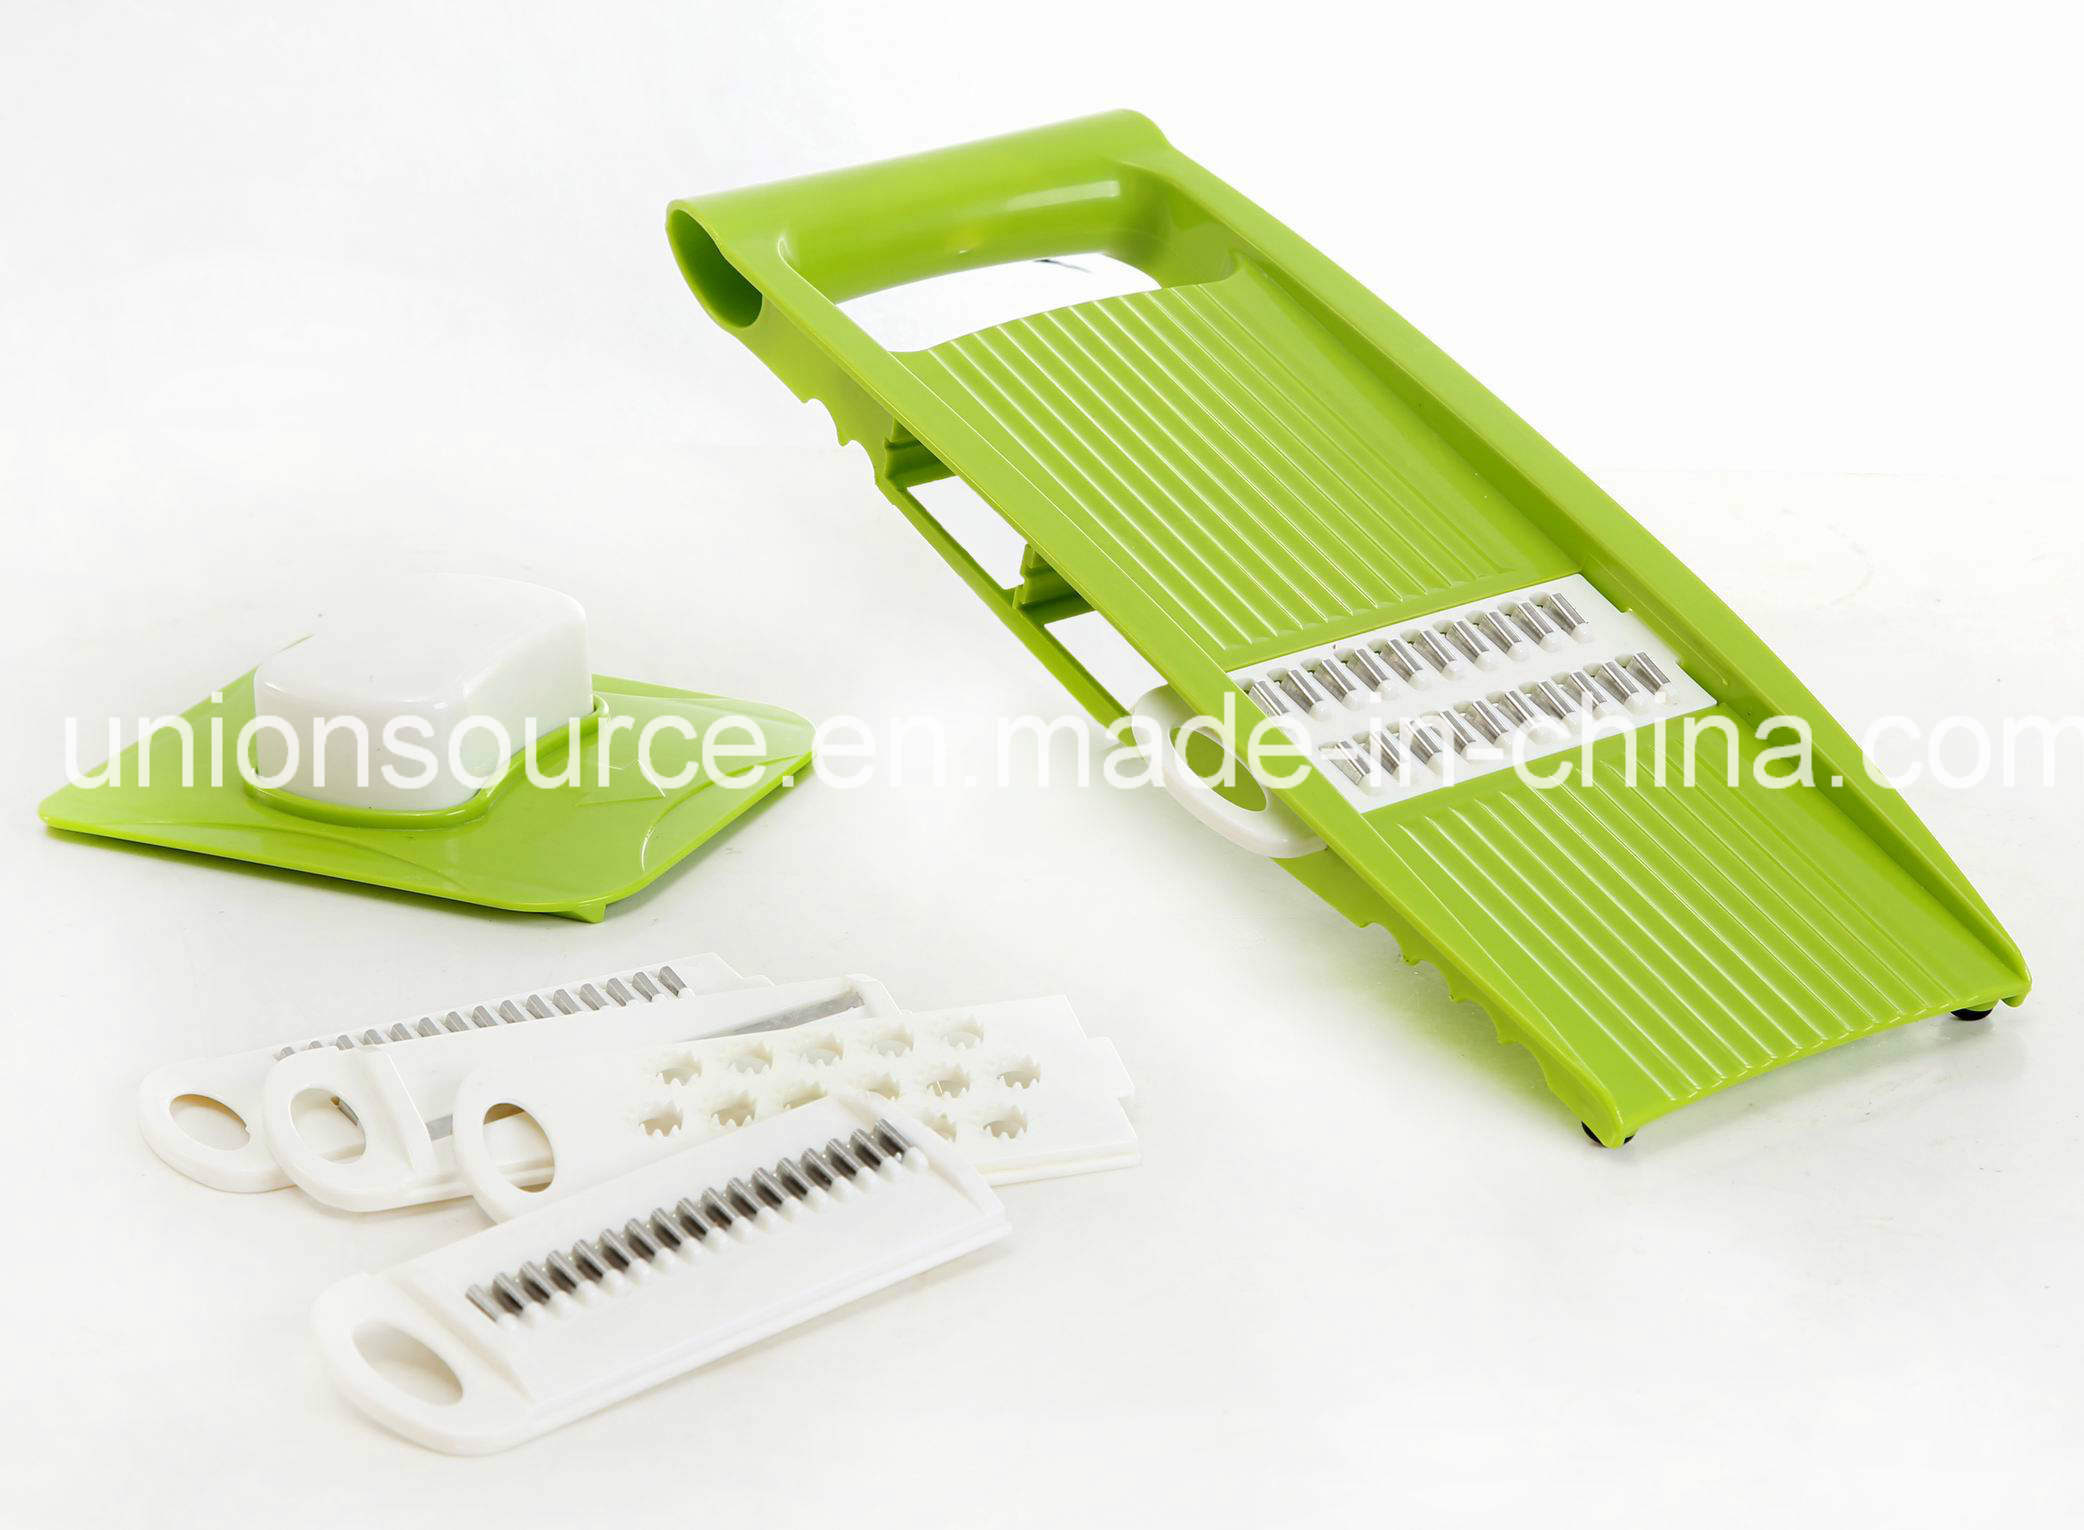 6in1 Muti-Function Kitchenware Plane with Handle Protection/Plastic Grater Tool